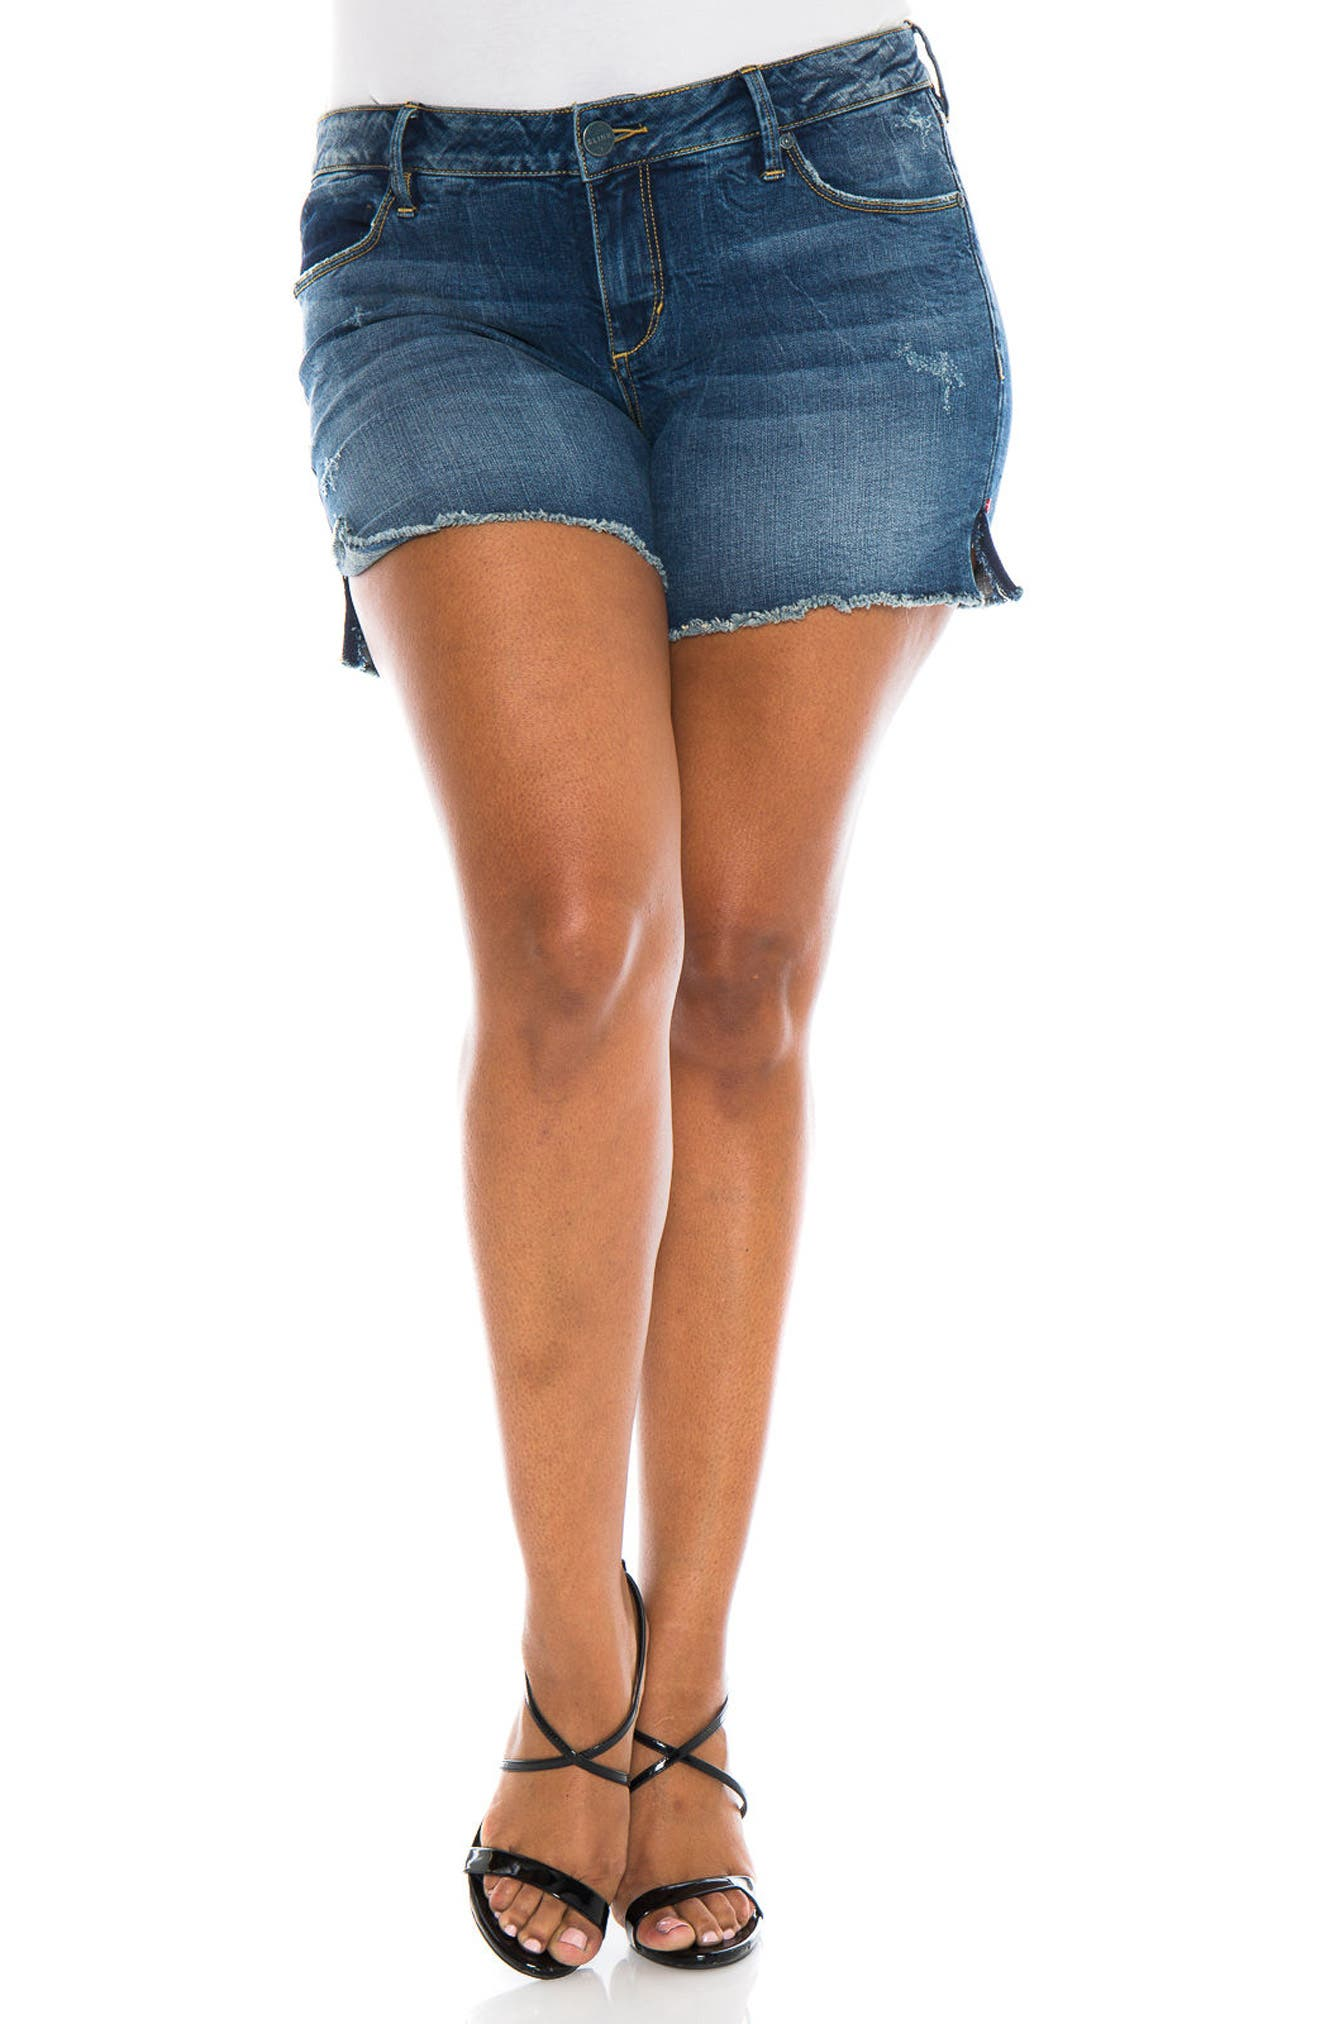 Main Image - SLINK Jeans Cutoff Denim Shorts (Caralyn) (Plus Size)